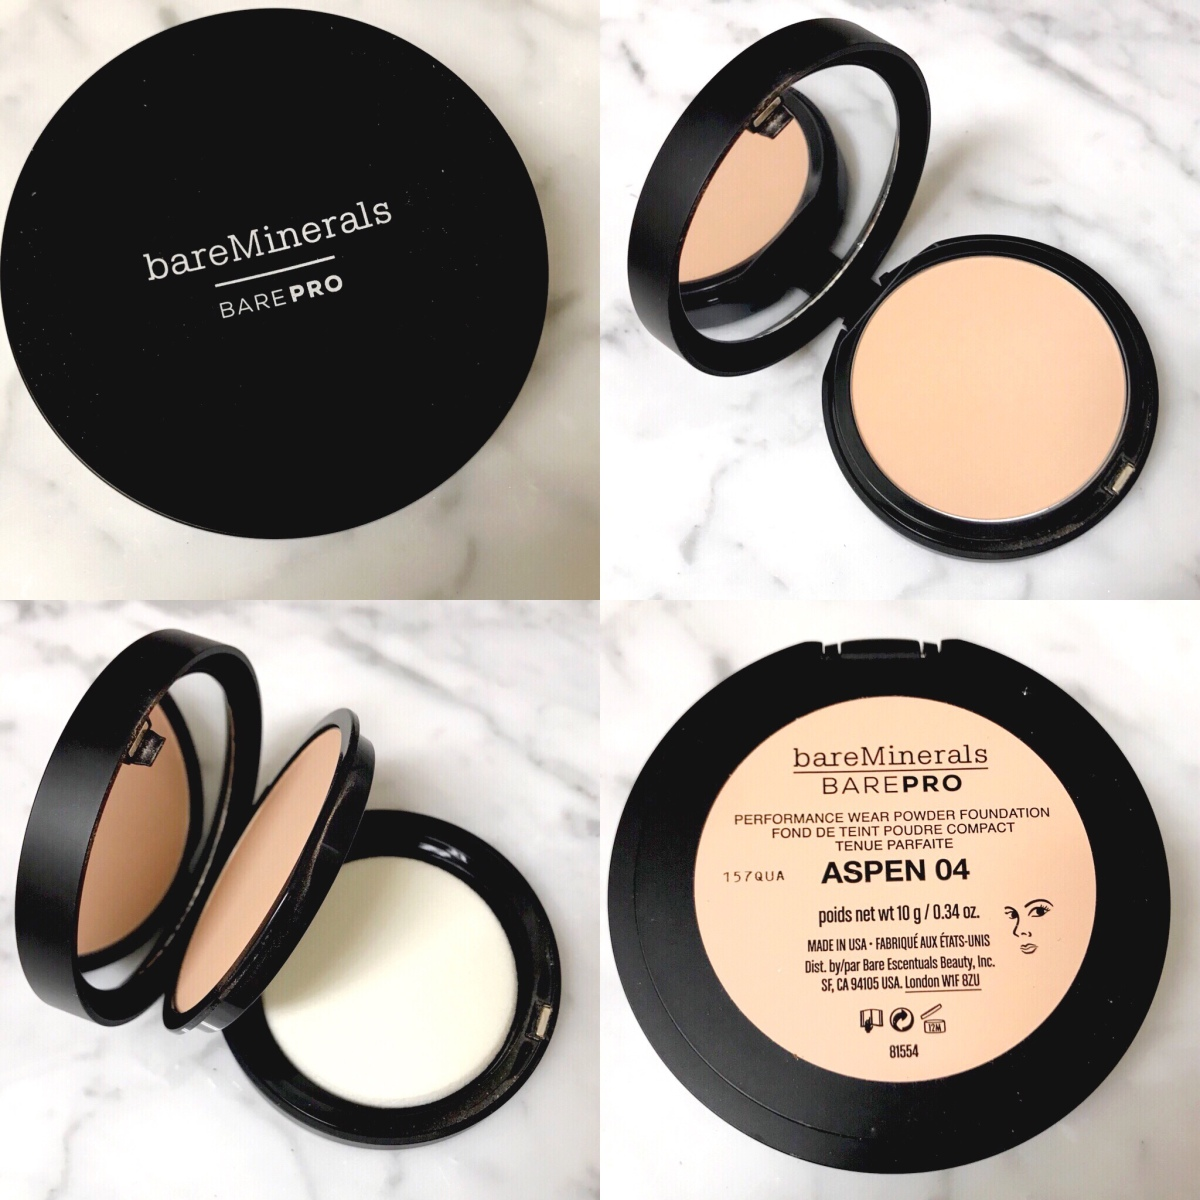 REVIEW | Bare Minerals BAREPRO Foundation – Everyday Makeup